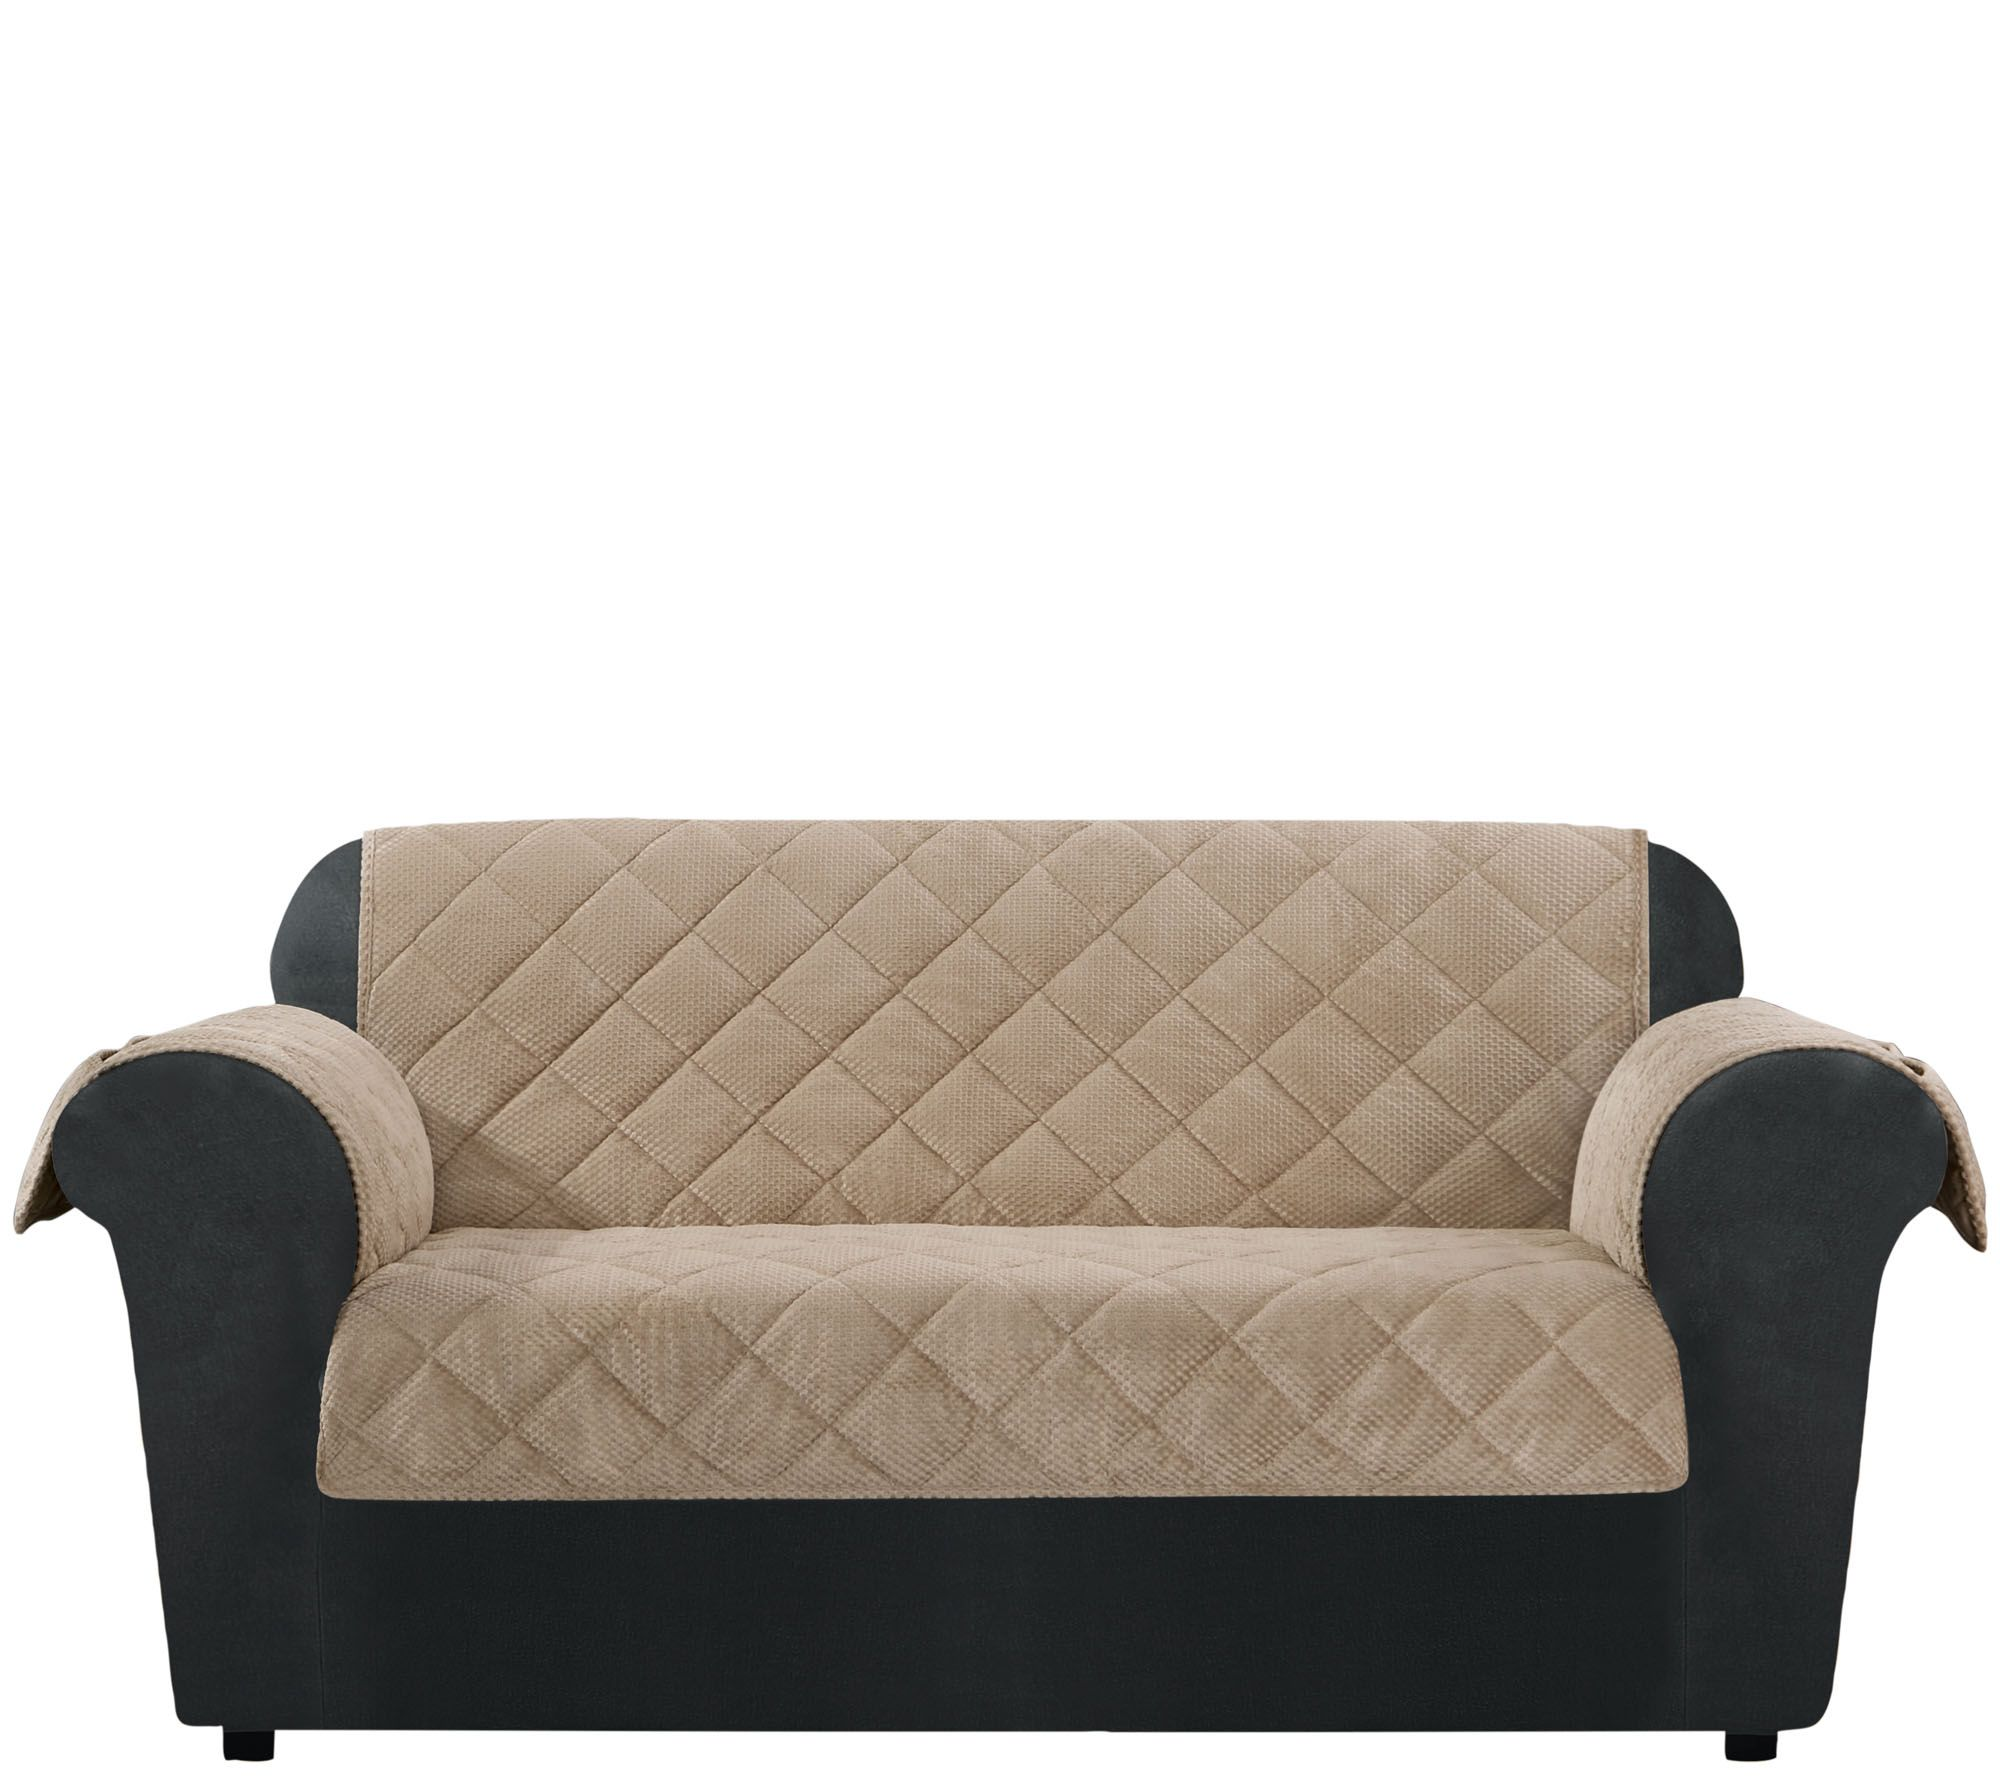 Sure Fit Loveseat Furniture Cover with Textured Pique Fabric